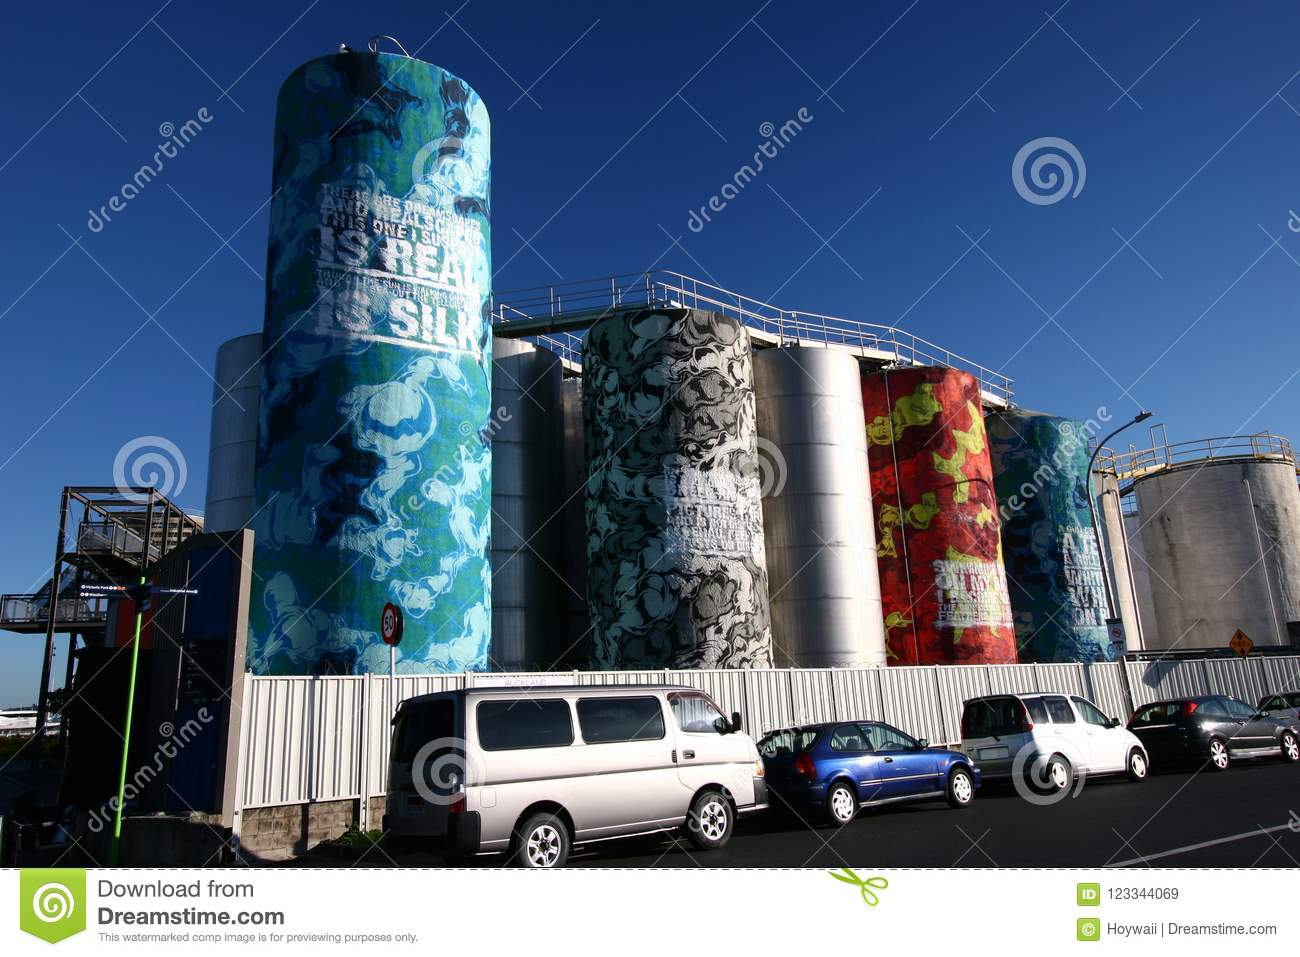 Popular Tourist Sightseeing Attraction Of Colorful Painted Silos In